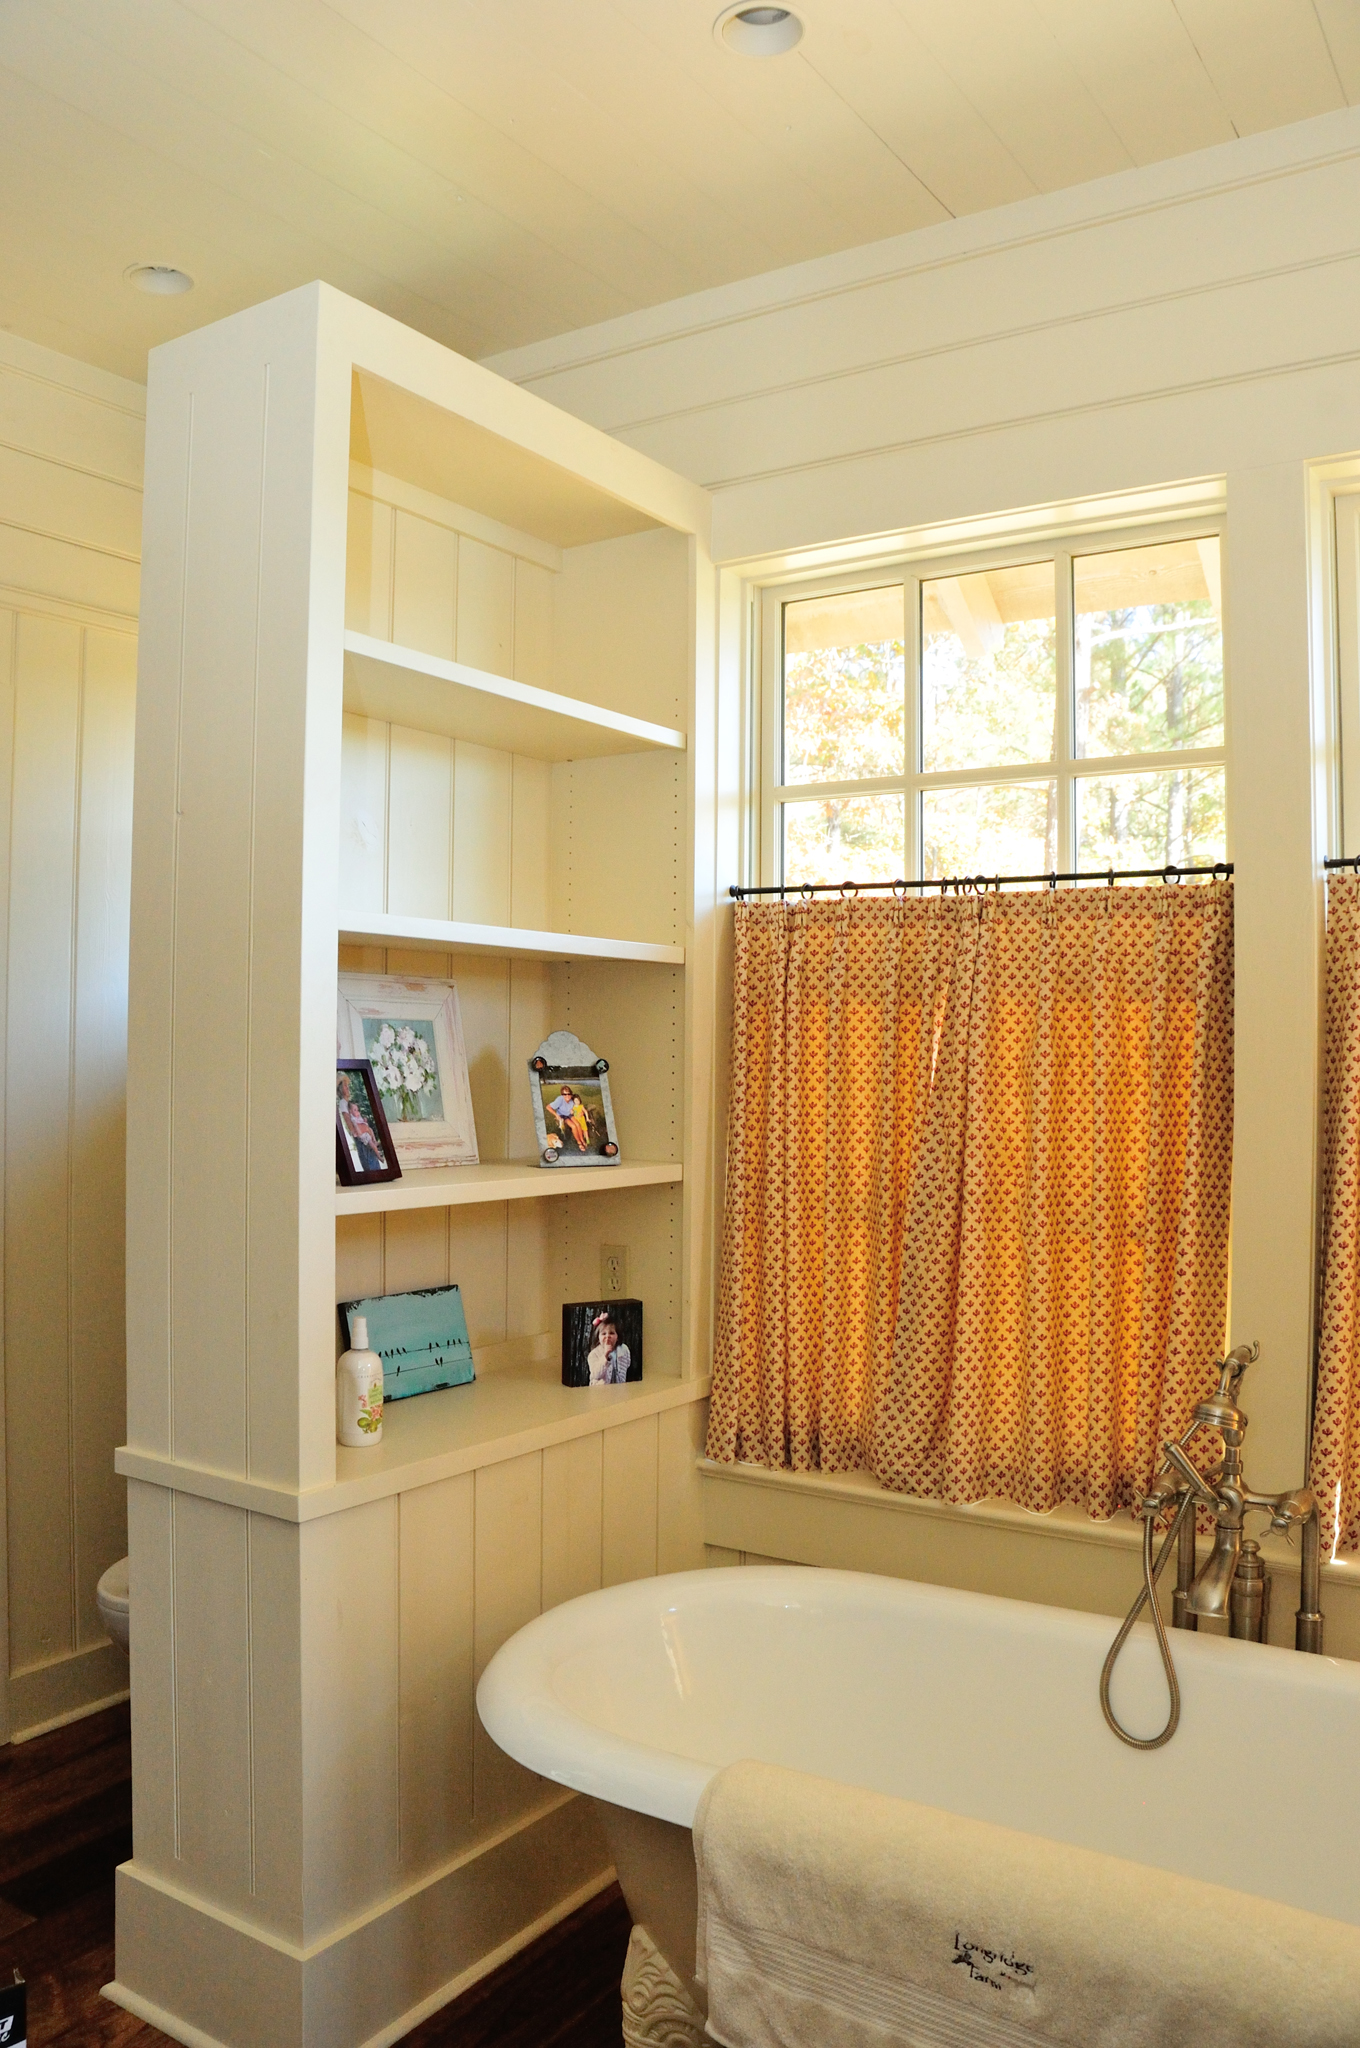 longridge_farm_lakehouse_04_lake_house_her_master_bathroom_bath_room_claw_foot_tub_wood_panel_1300.jpg